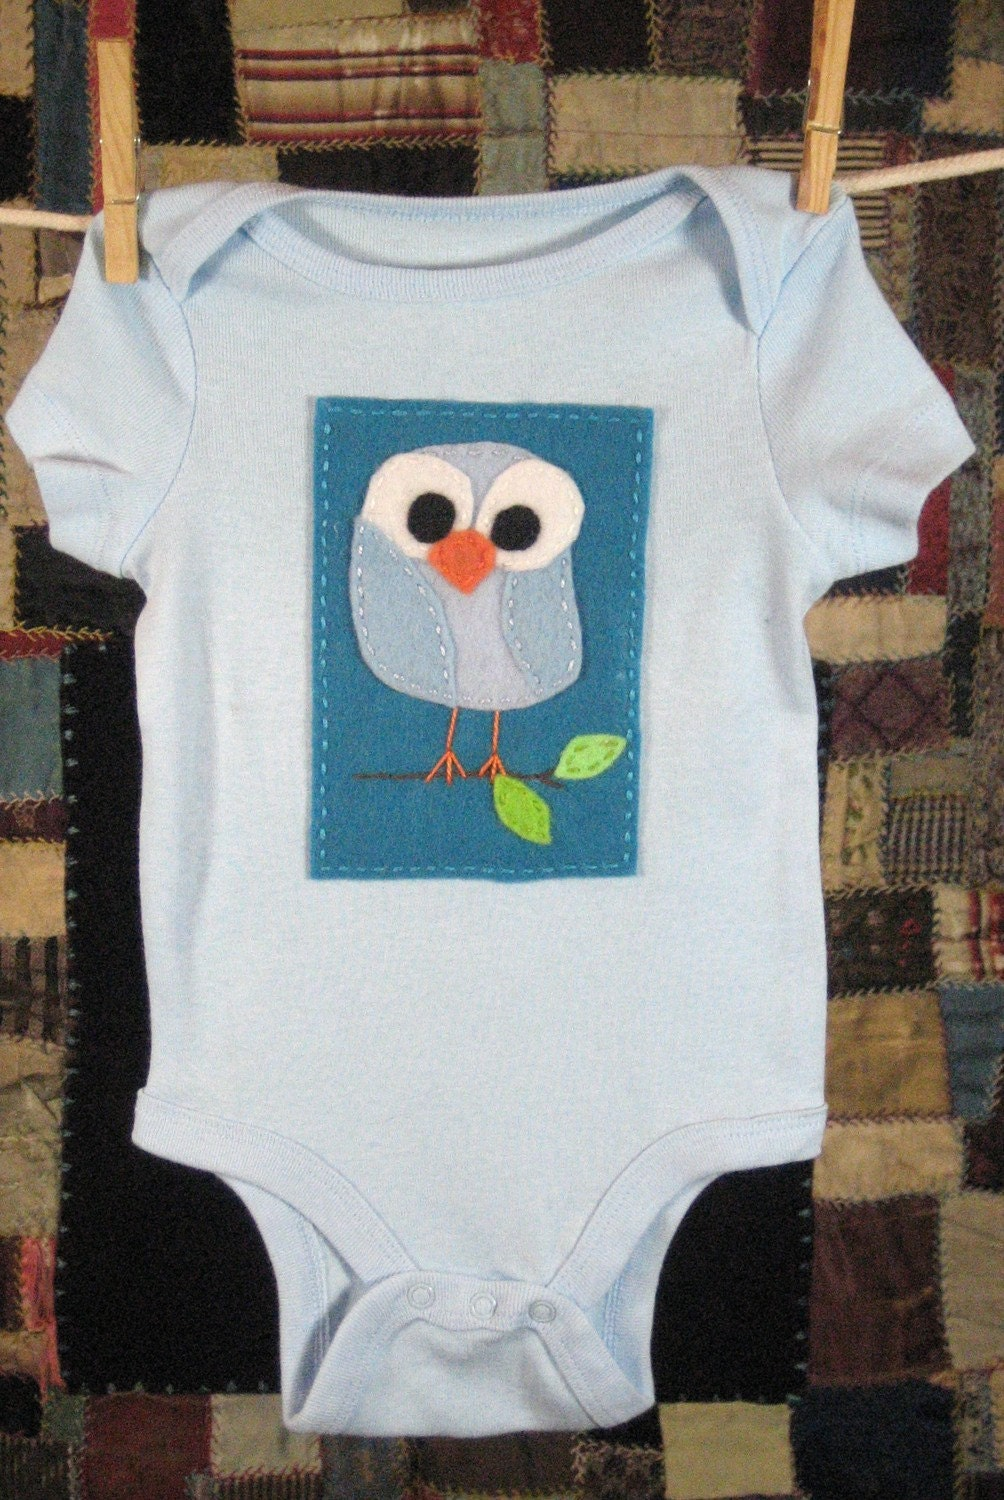 Light Blue Owl on Bright Blue on Light Blue Baby Bodysuit (size 3-6 mo.)